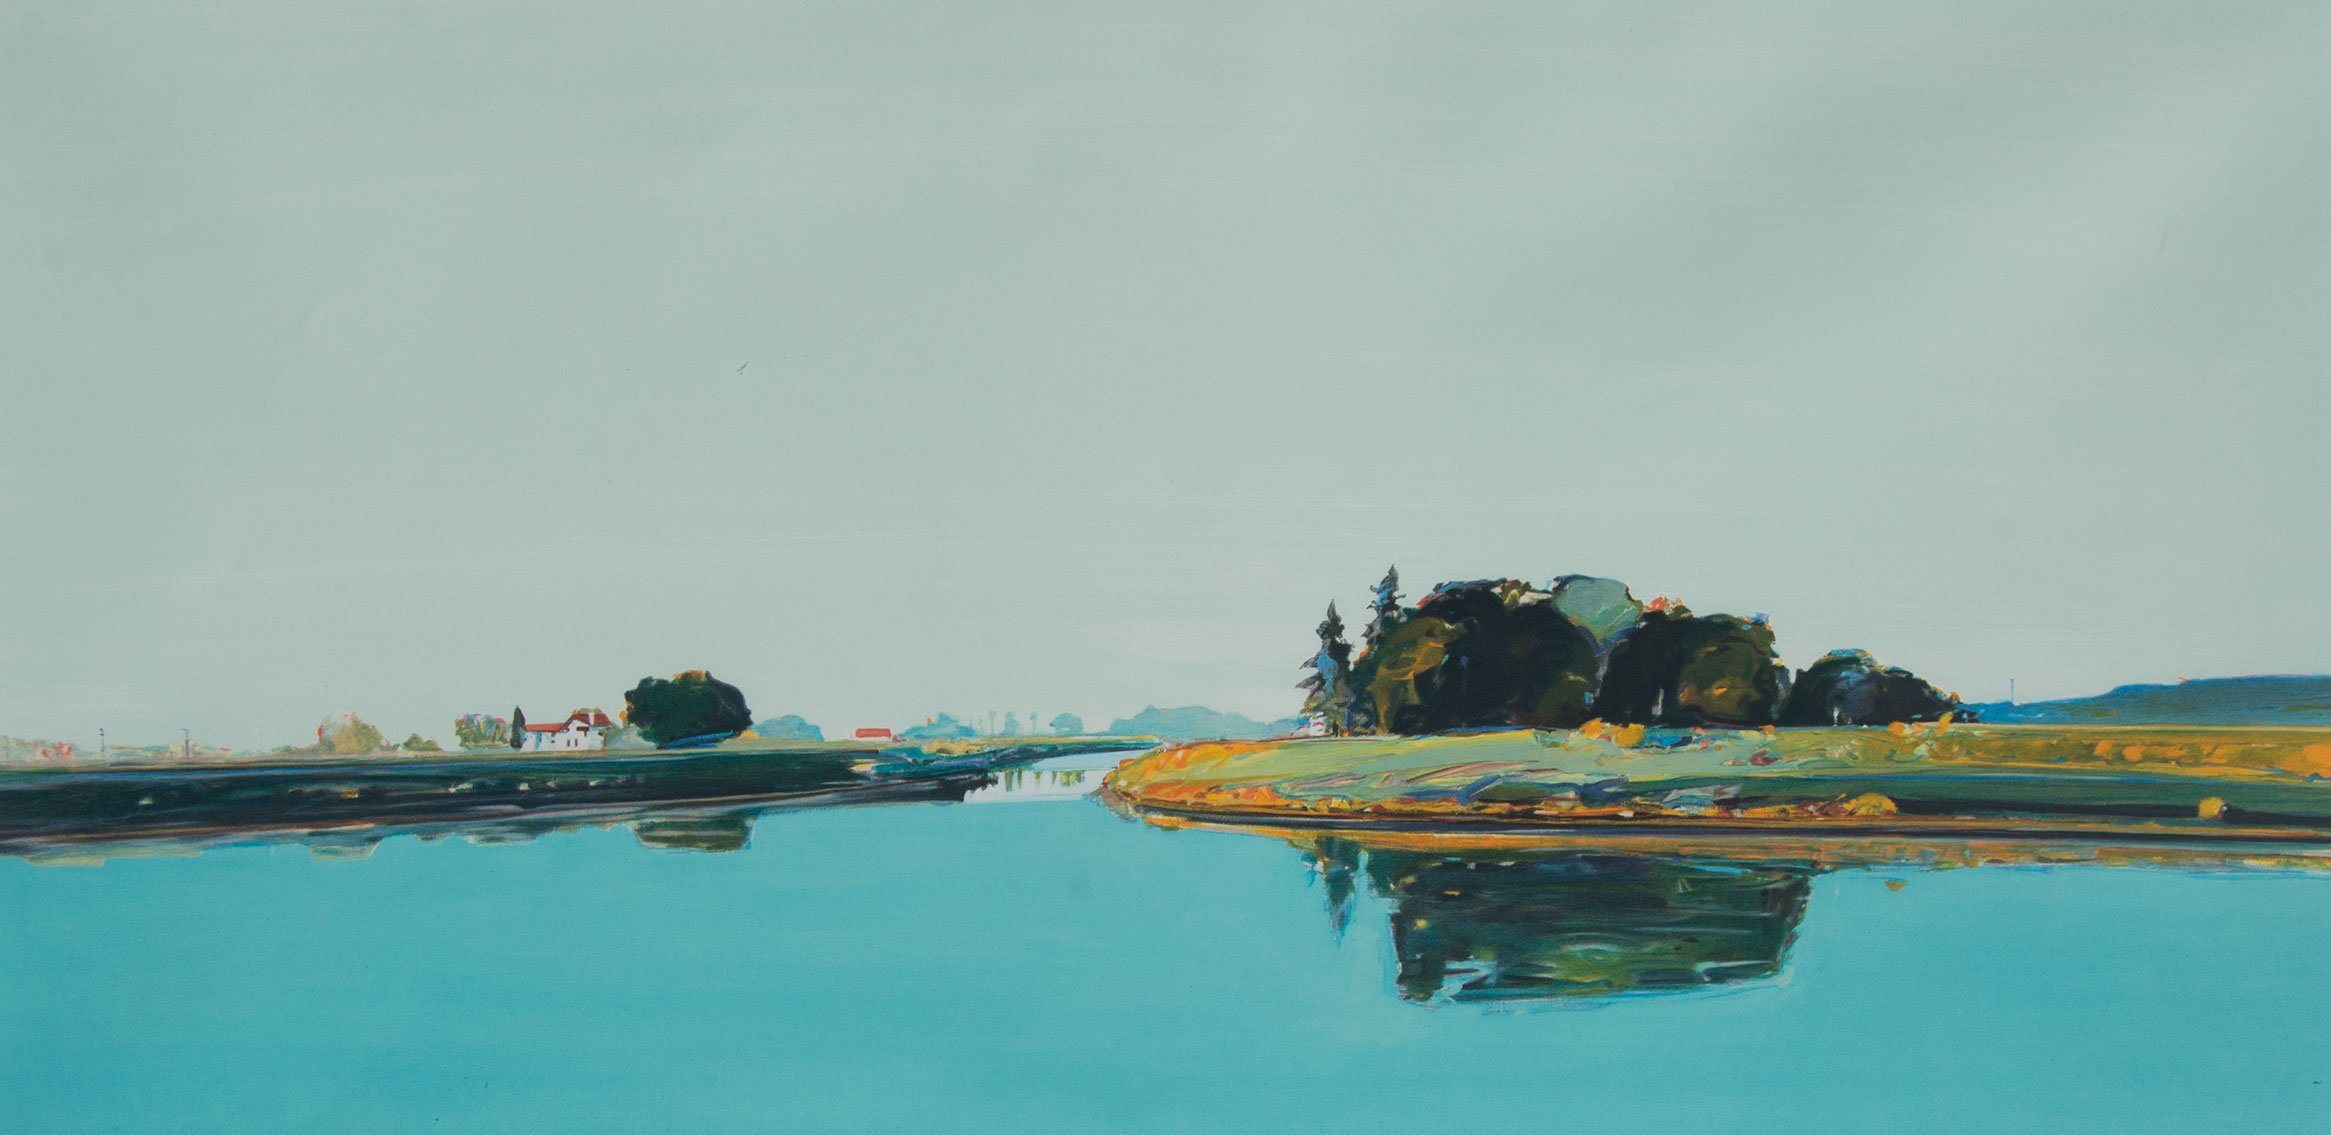 Gregory Kondos, River View 76/100, 1990